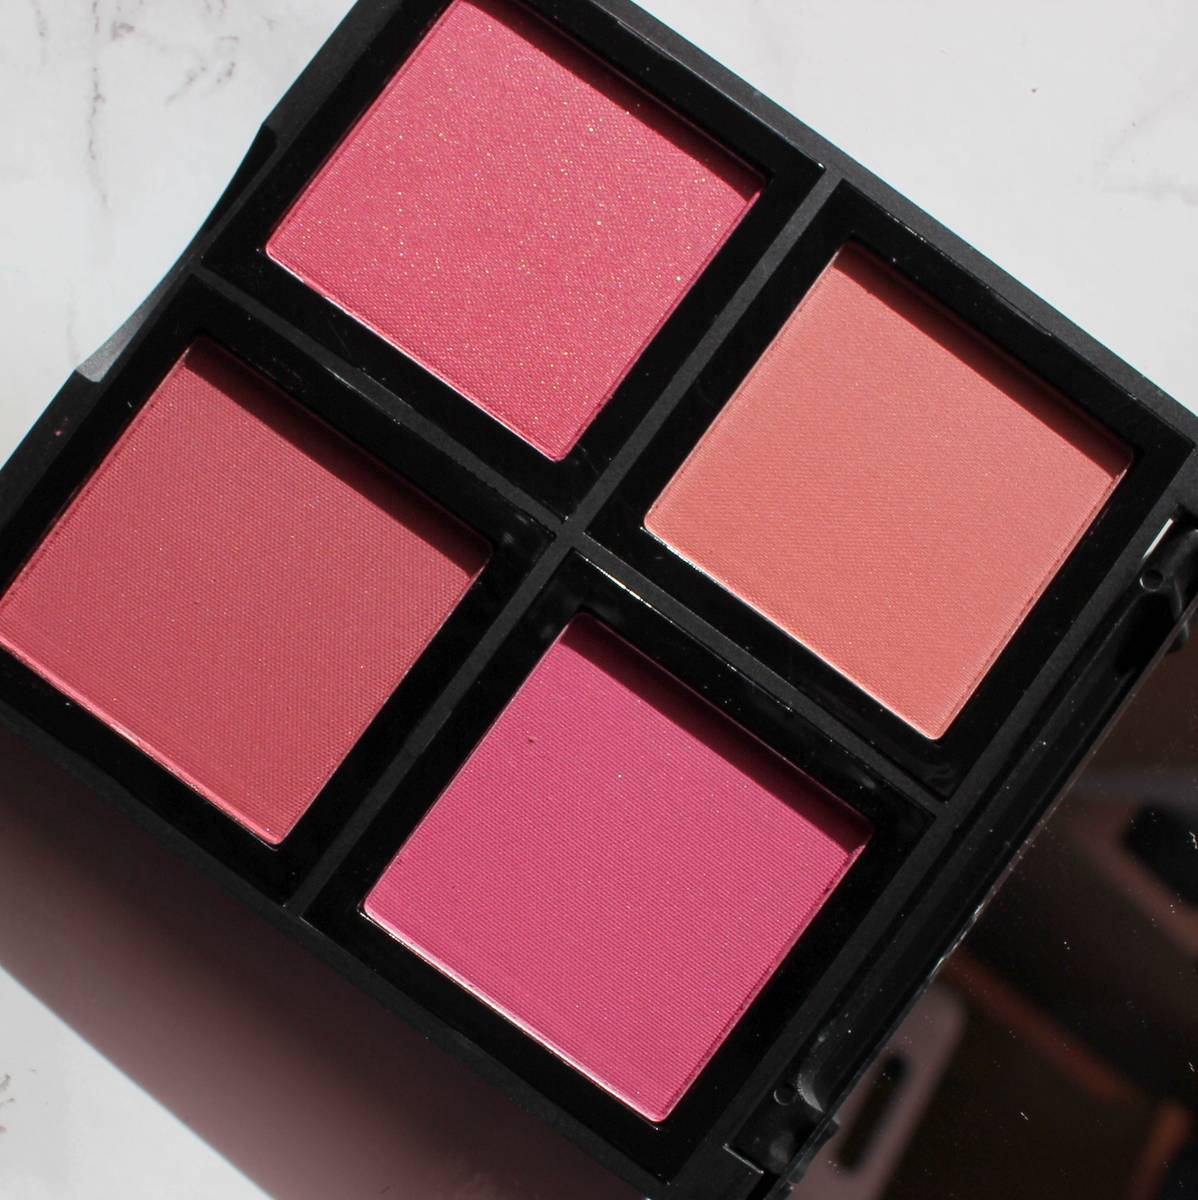 e.l.f cosmetics blush palette (dark)